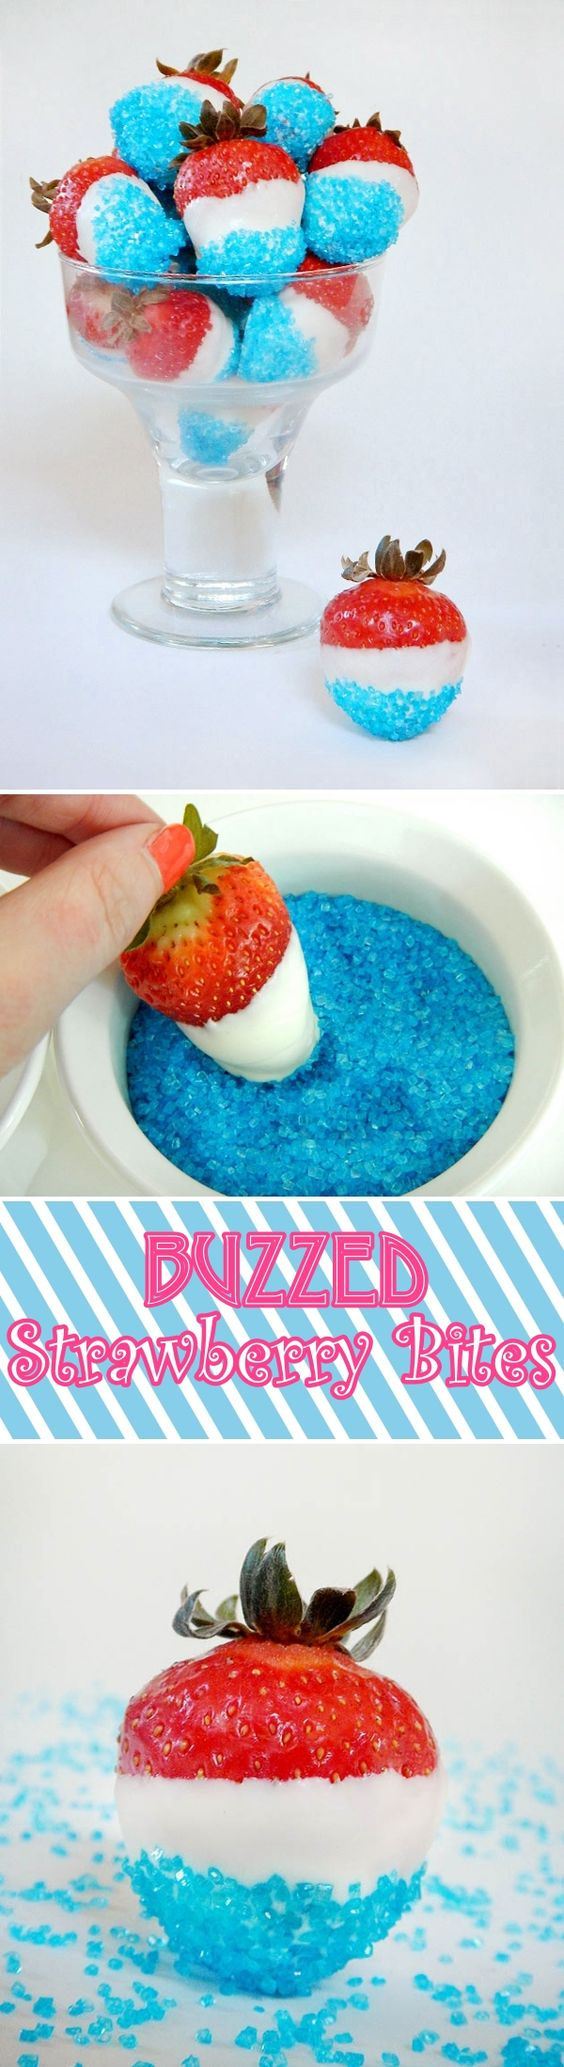 Easy DIY BUZZED STRAWBERRY BITES Fourth of July Dessert idea for your party. Treats for adults.